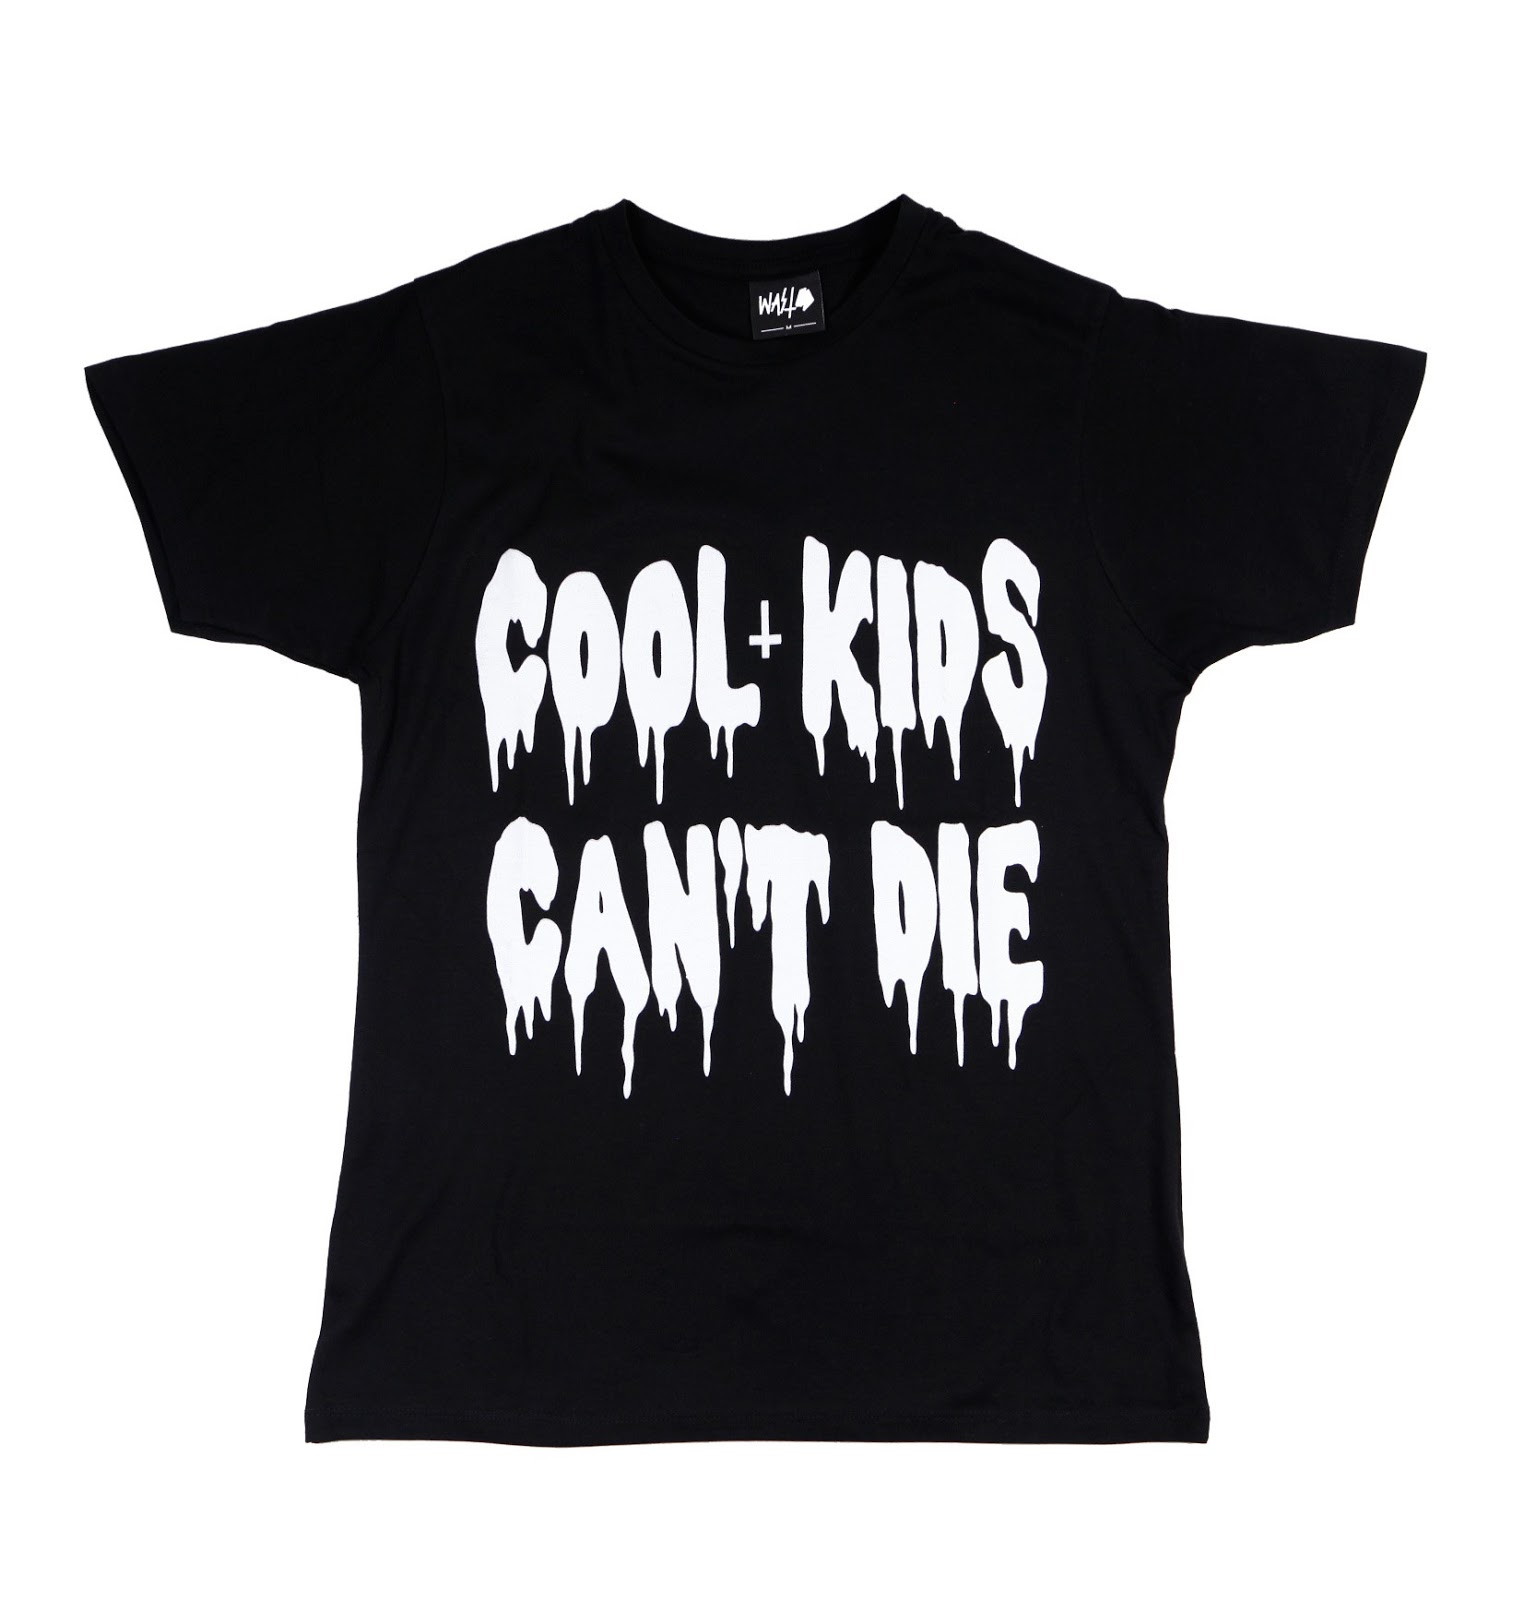 https://grafitee.es/s/camisetas/712-tshirt-cool-kids-can-t-die.html